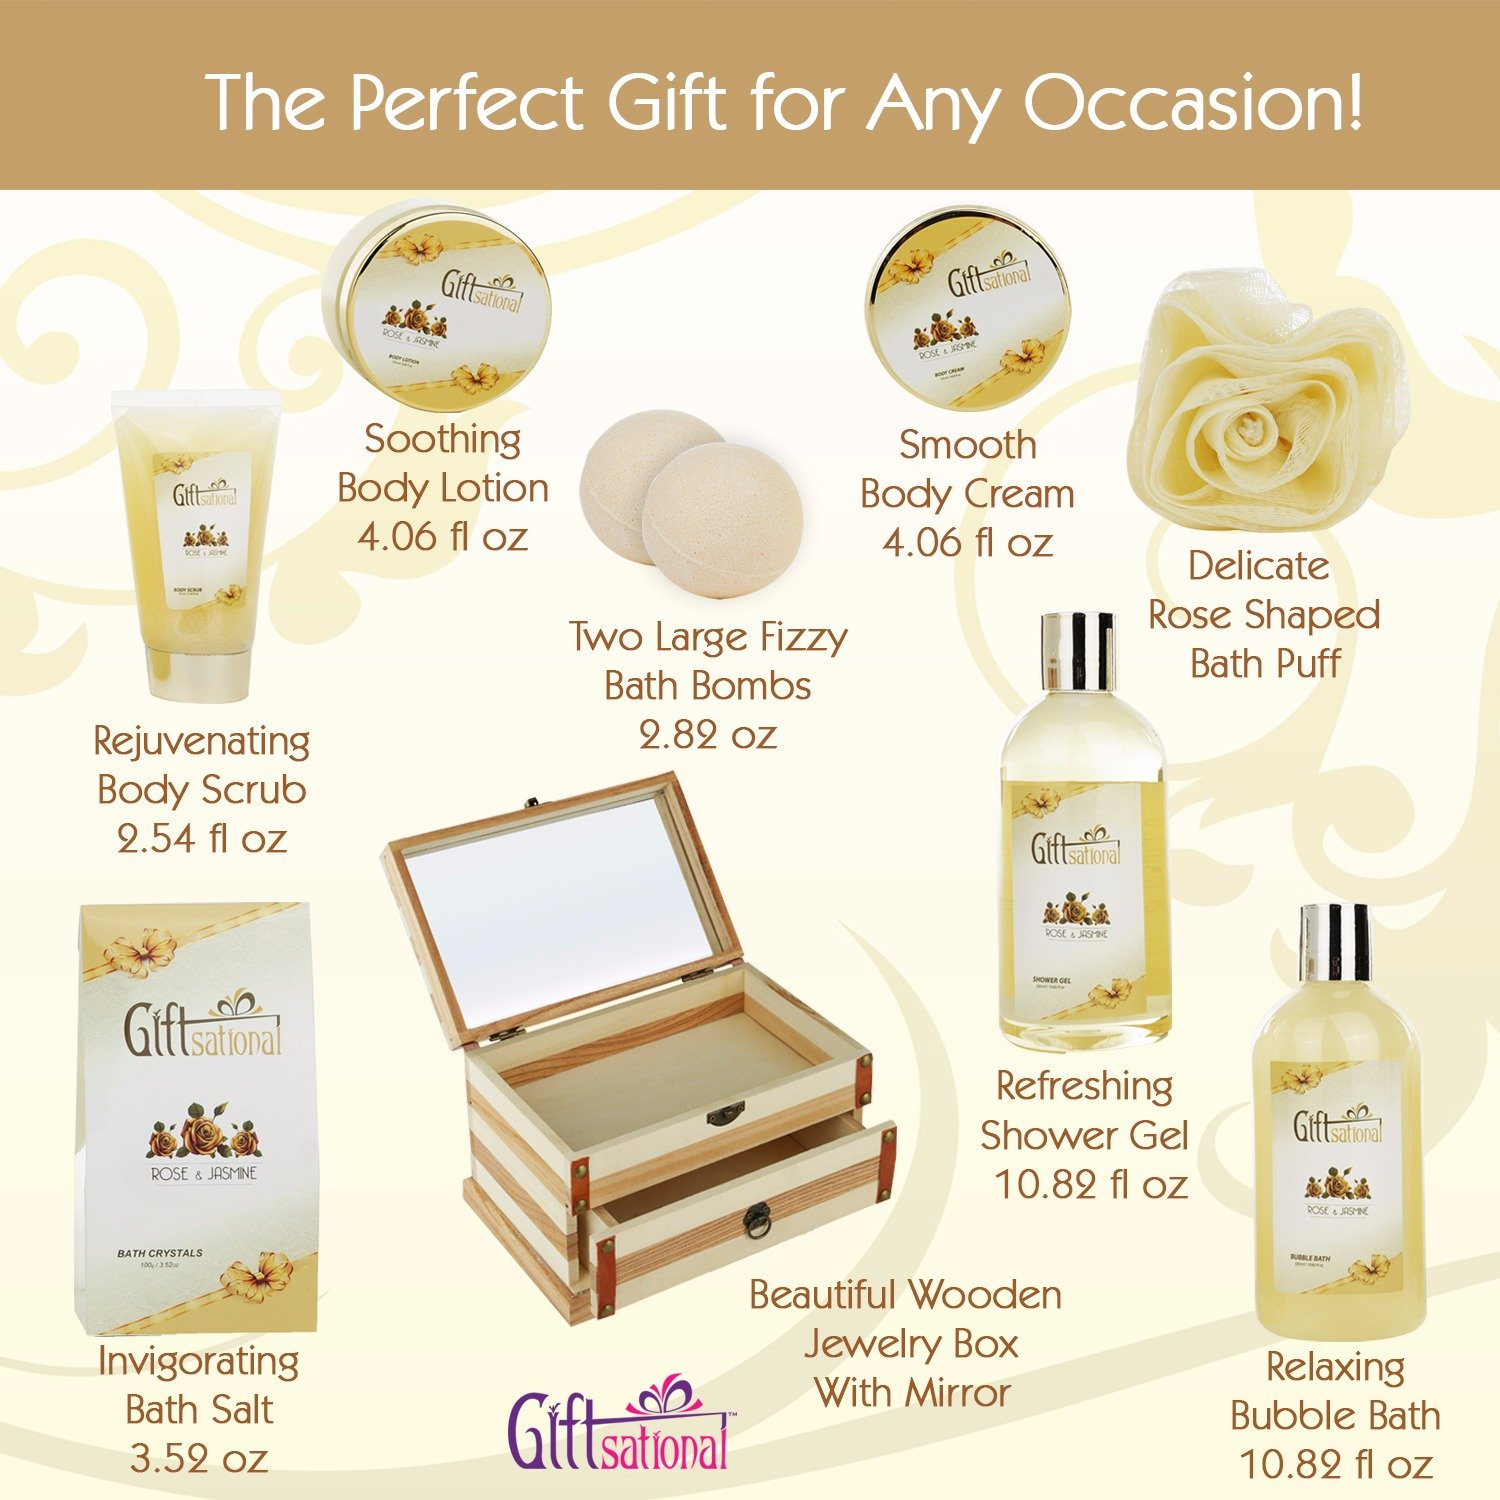 Spa Gift Basket Refreshing Rose & Jasmine Fragrance, Beautiful Wooden Gift Box with Mirror, Perfect Wedding, Birthday or Anniversary Gift, Bath gift Set Includes Shower Gel, Bath Bombs and More! by Giftsational (Image #2)